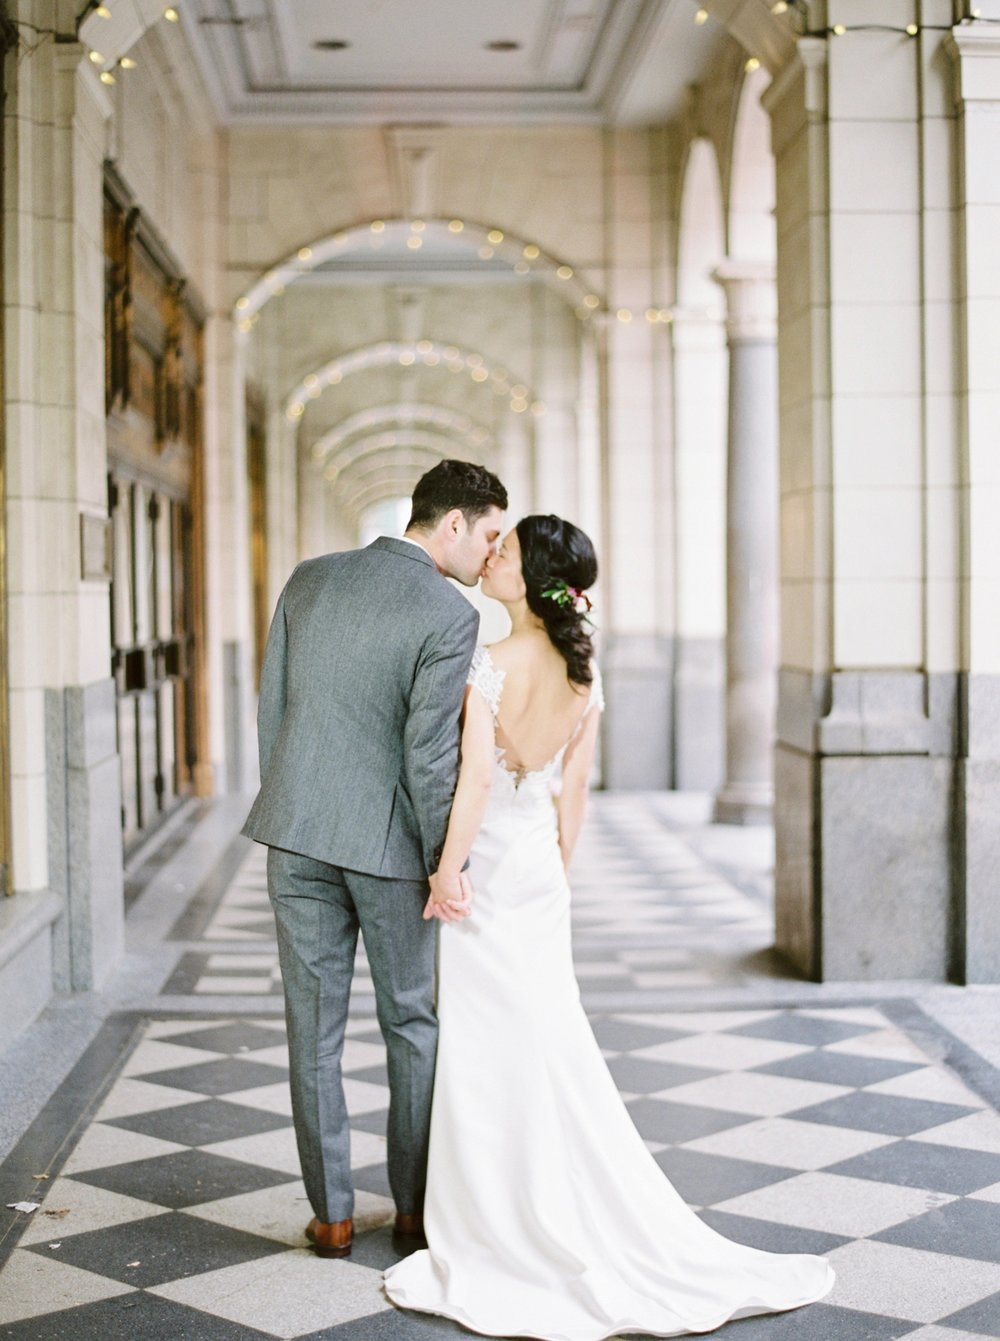 Calgary wedding photographer | fine art film photography | Calgary Wedding Photographers | Justine Milton Photography | workshop wedding | bride and groom portraits | wedding dress